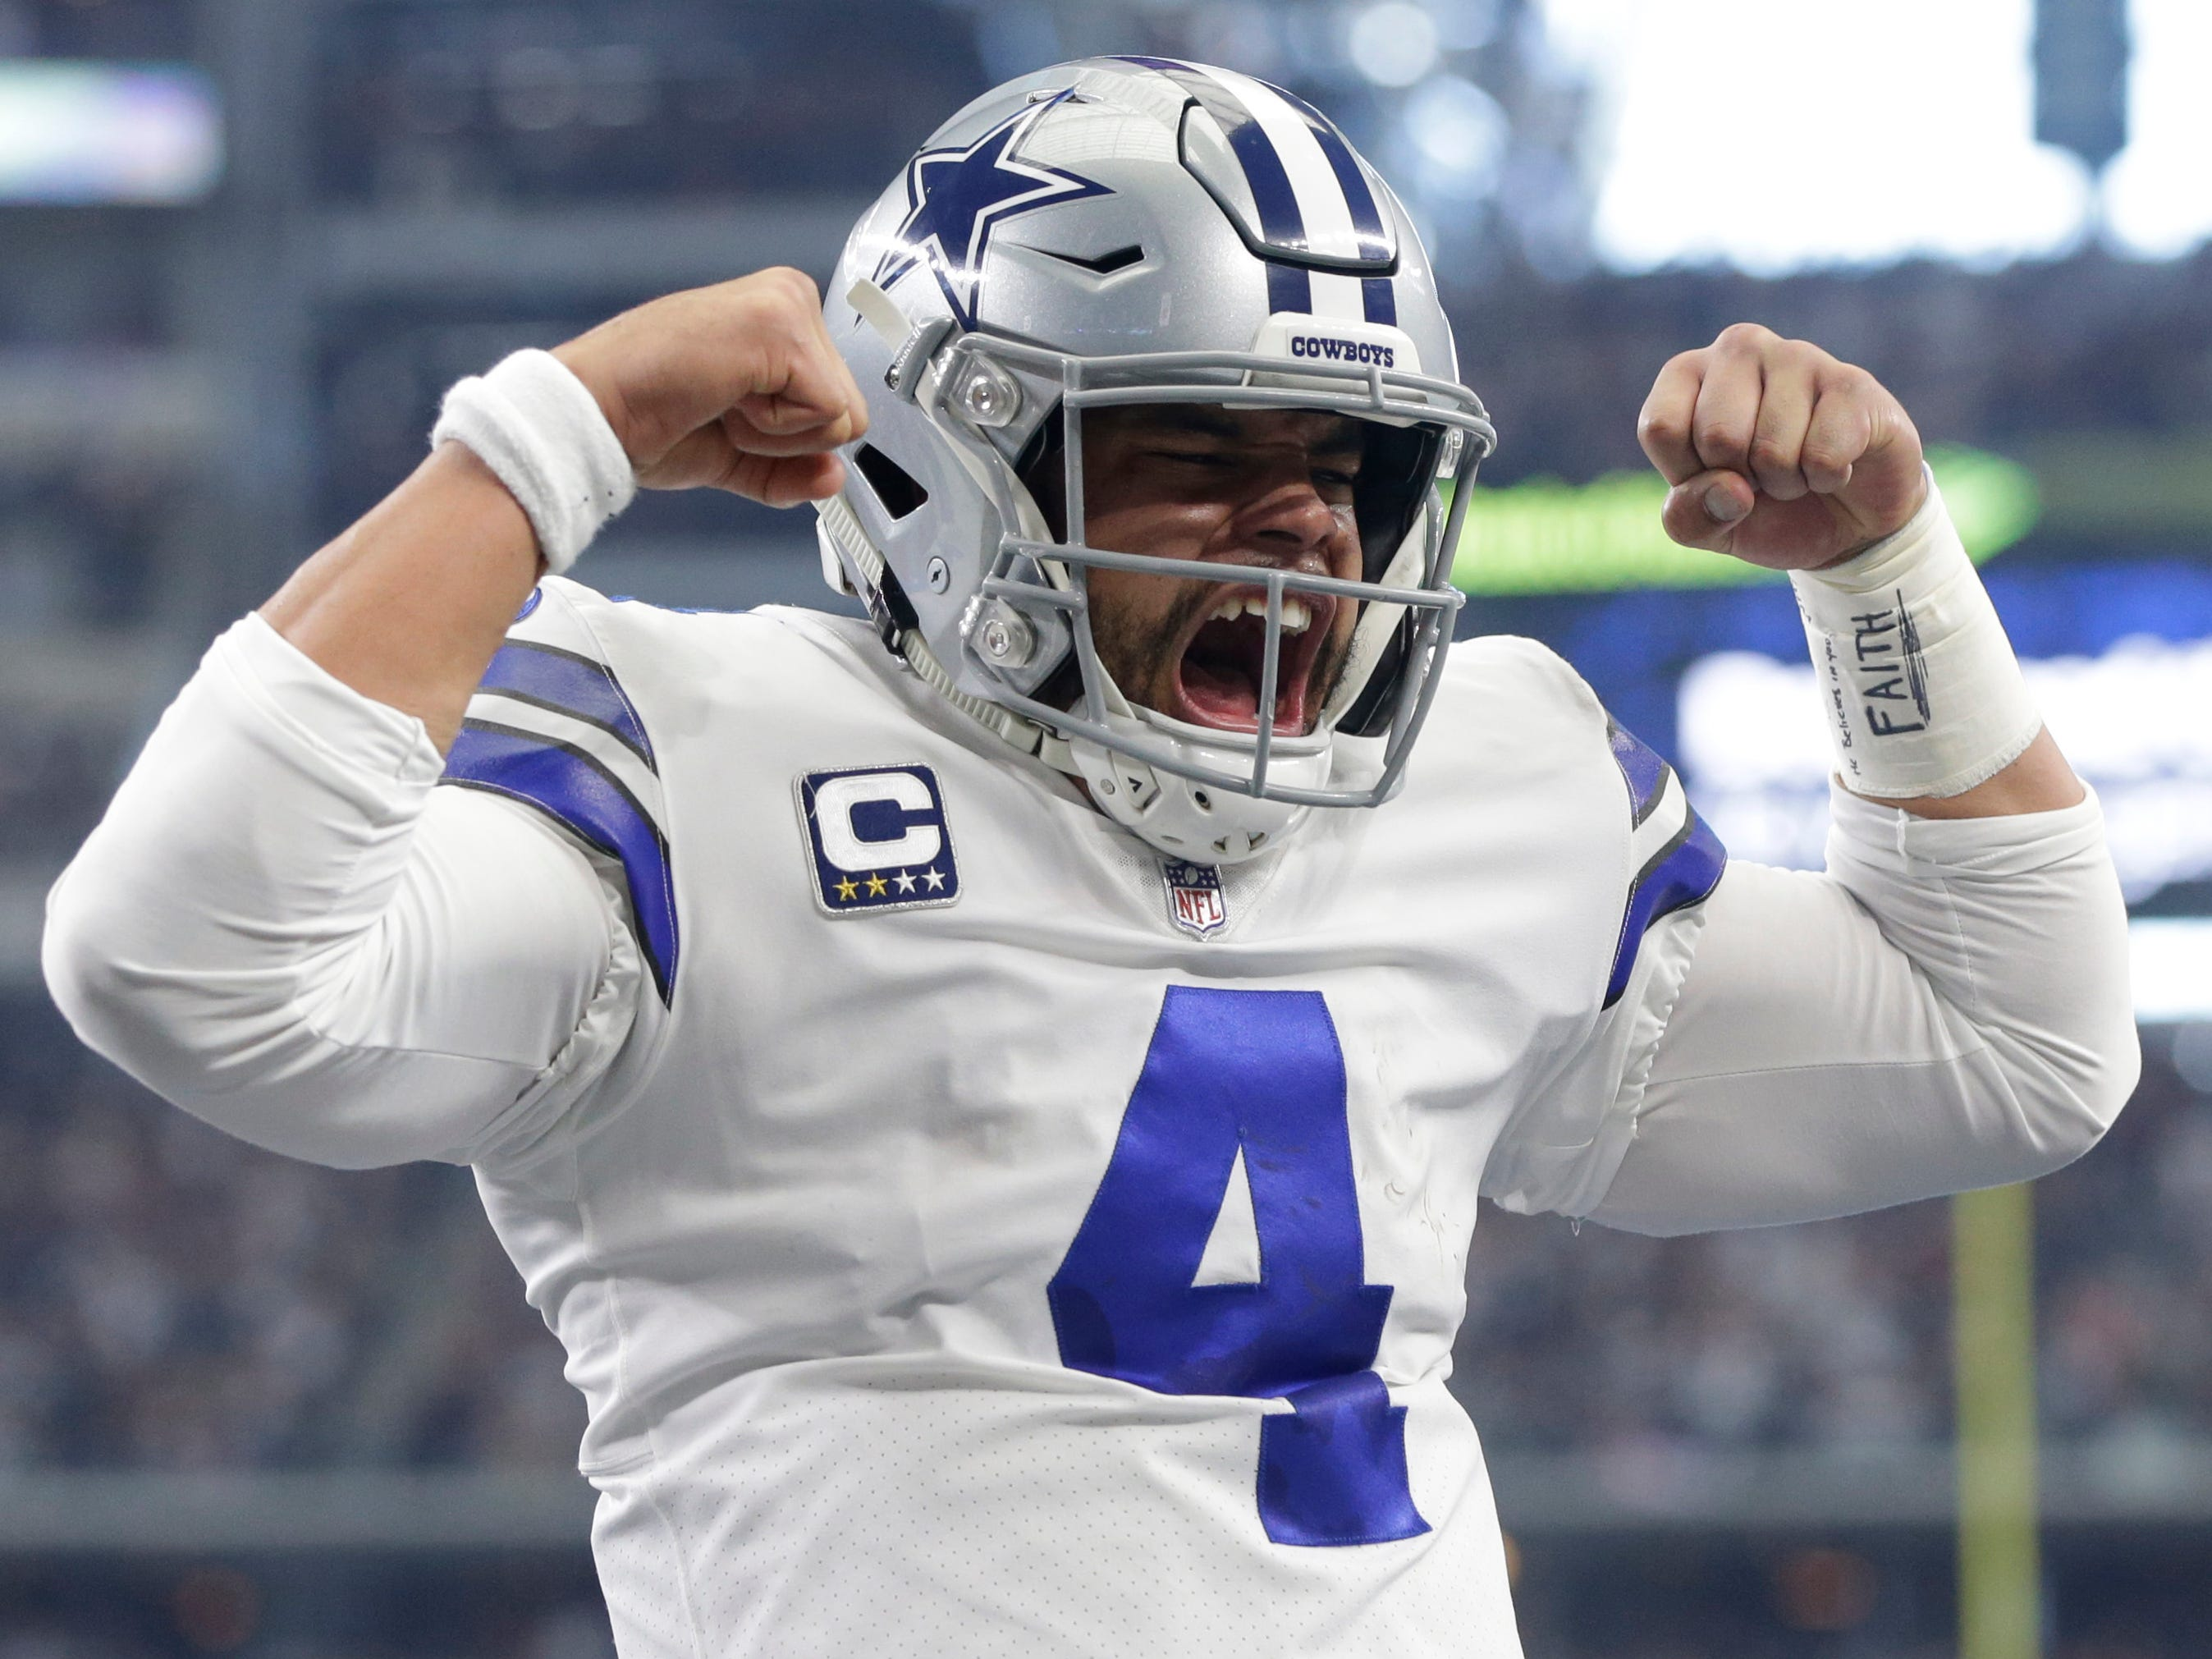 Dallas Cowboys quarterback Dak Prescott reacts after running for a 7-yard touchdown in the first quarter against the Tampa Bay Buccaneers  at AT&T Stadium.